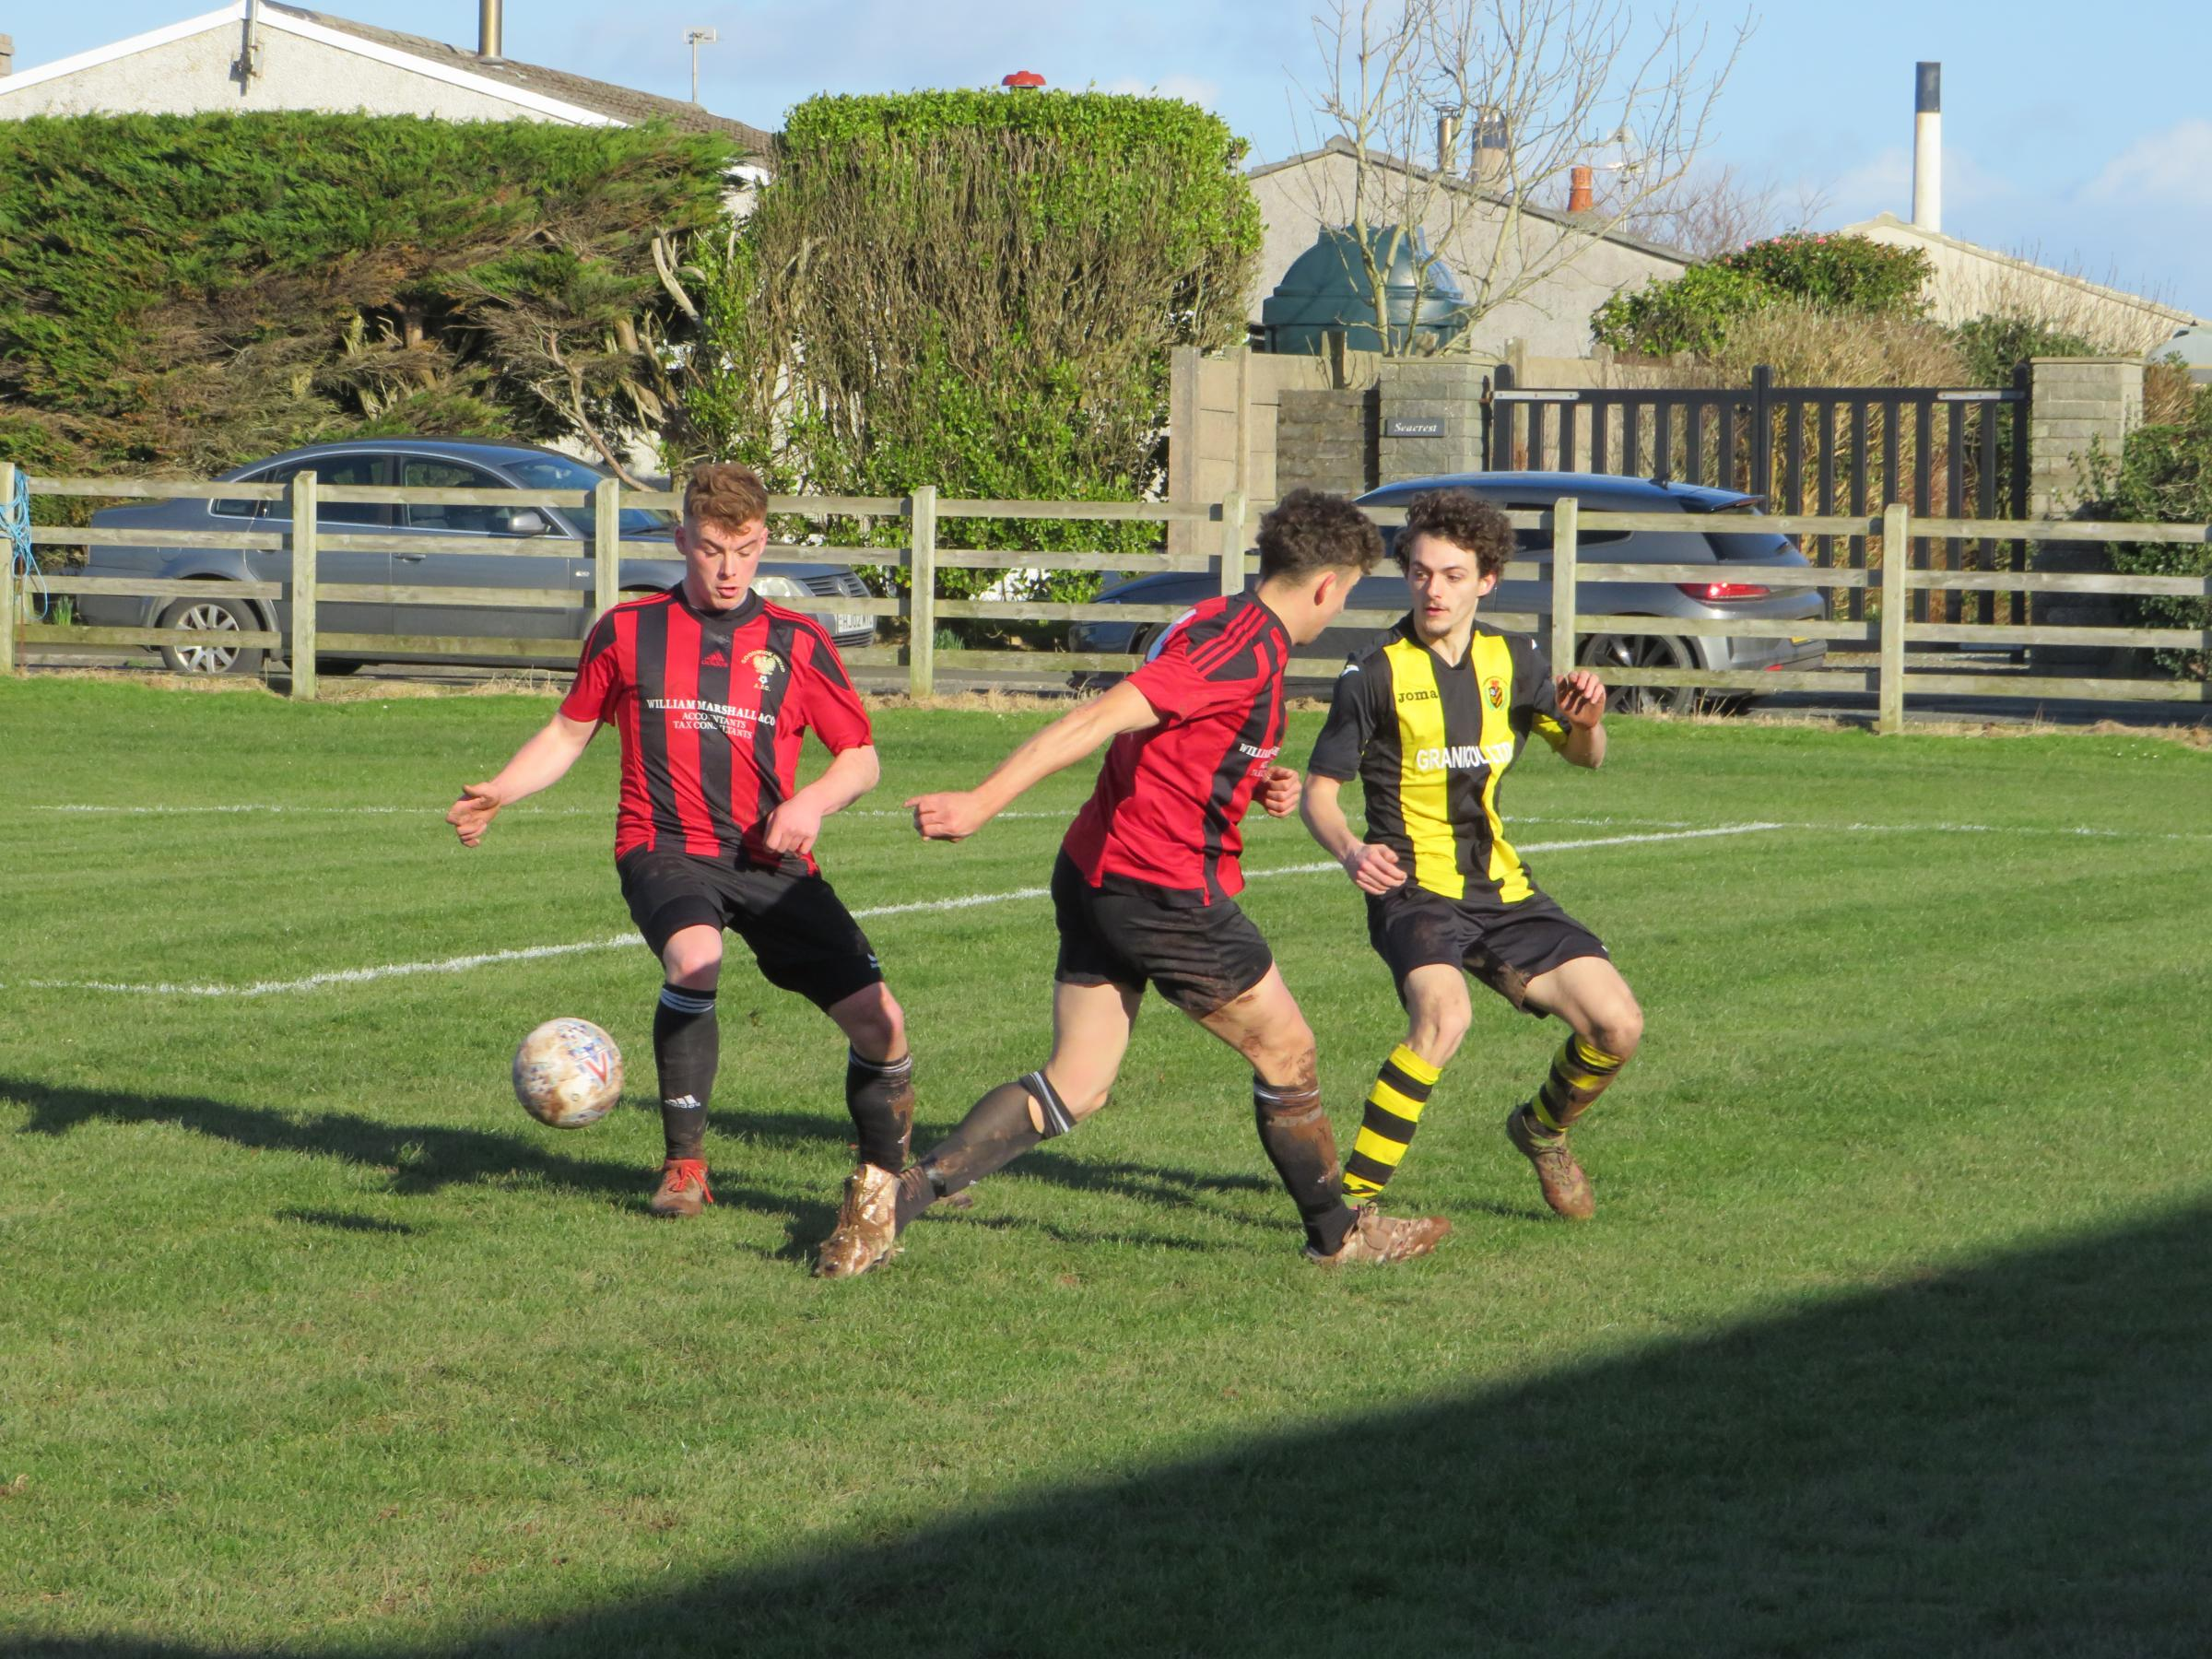 Goodwick and Herbie both return to league action.